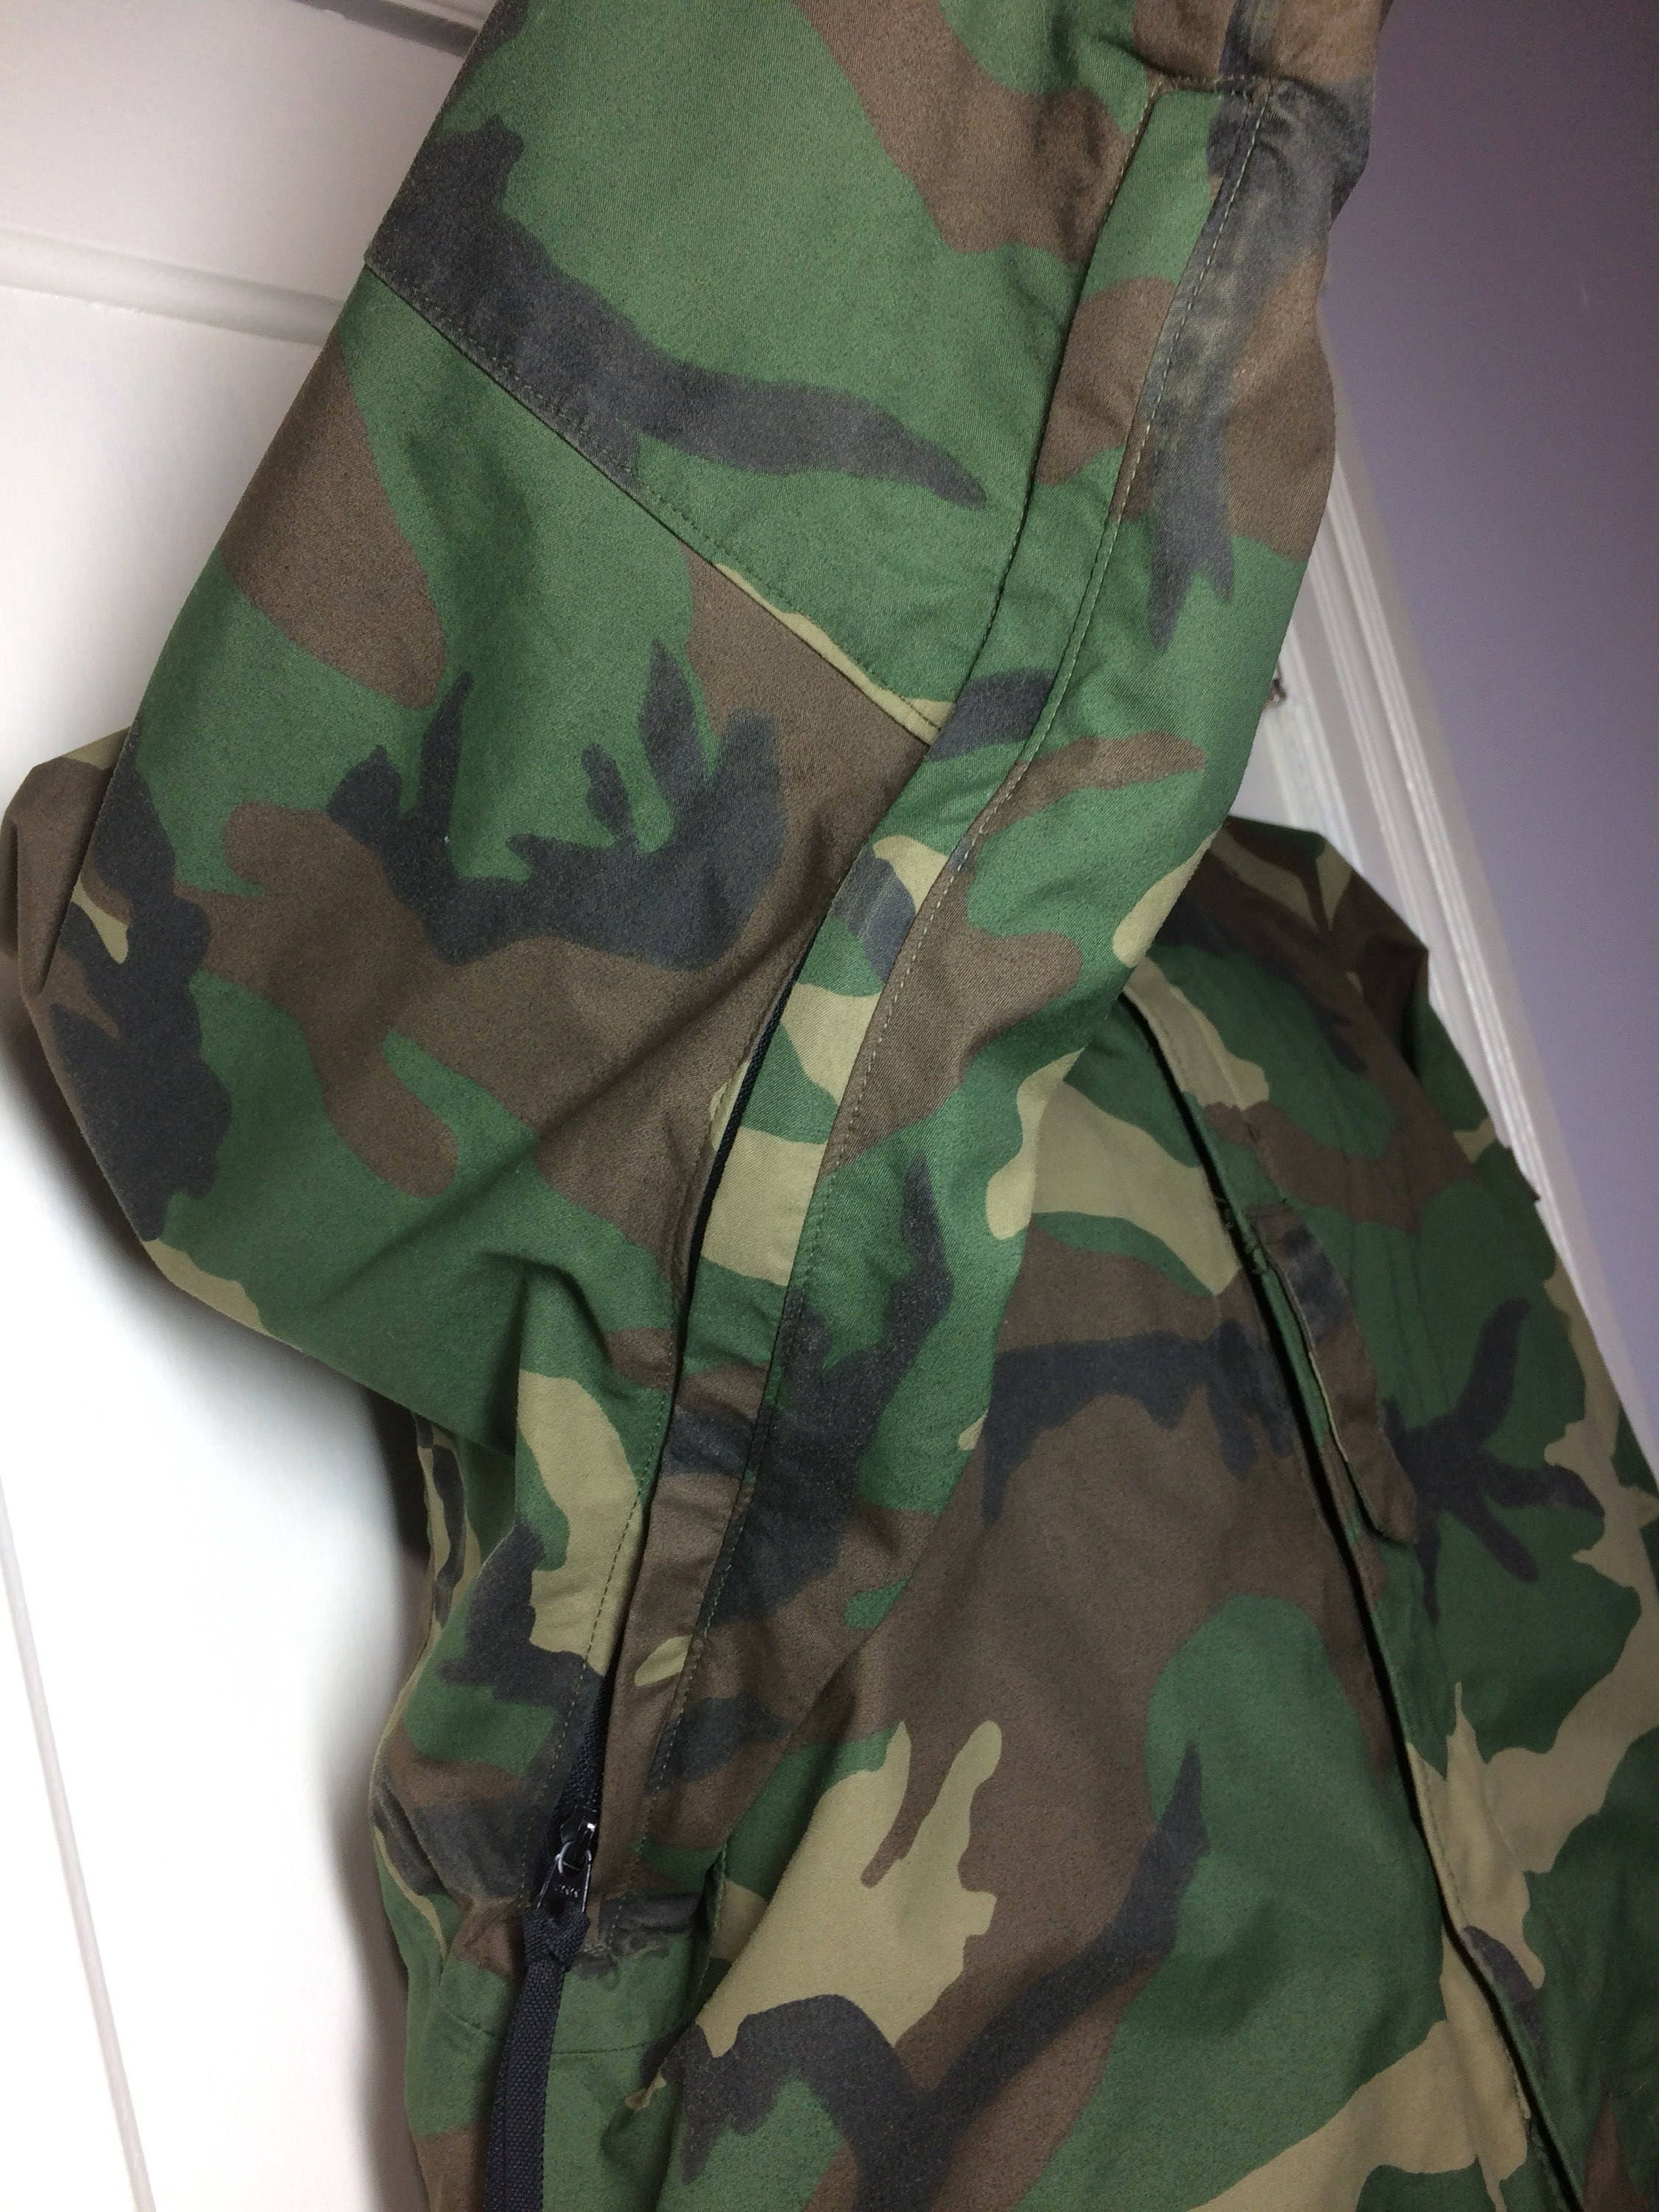 2e88ba2cbd5c8 1990's 1992 military camouflage cold weather parka jacket size Small long  tall feels Gore-Tex by Tennessee Apparel Corp camo fatigues